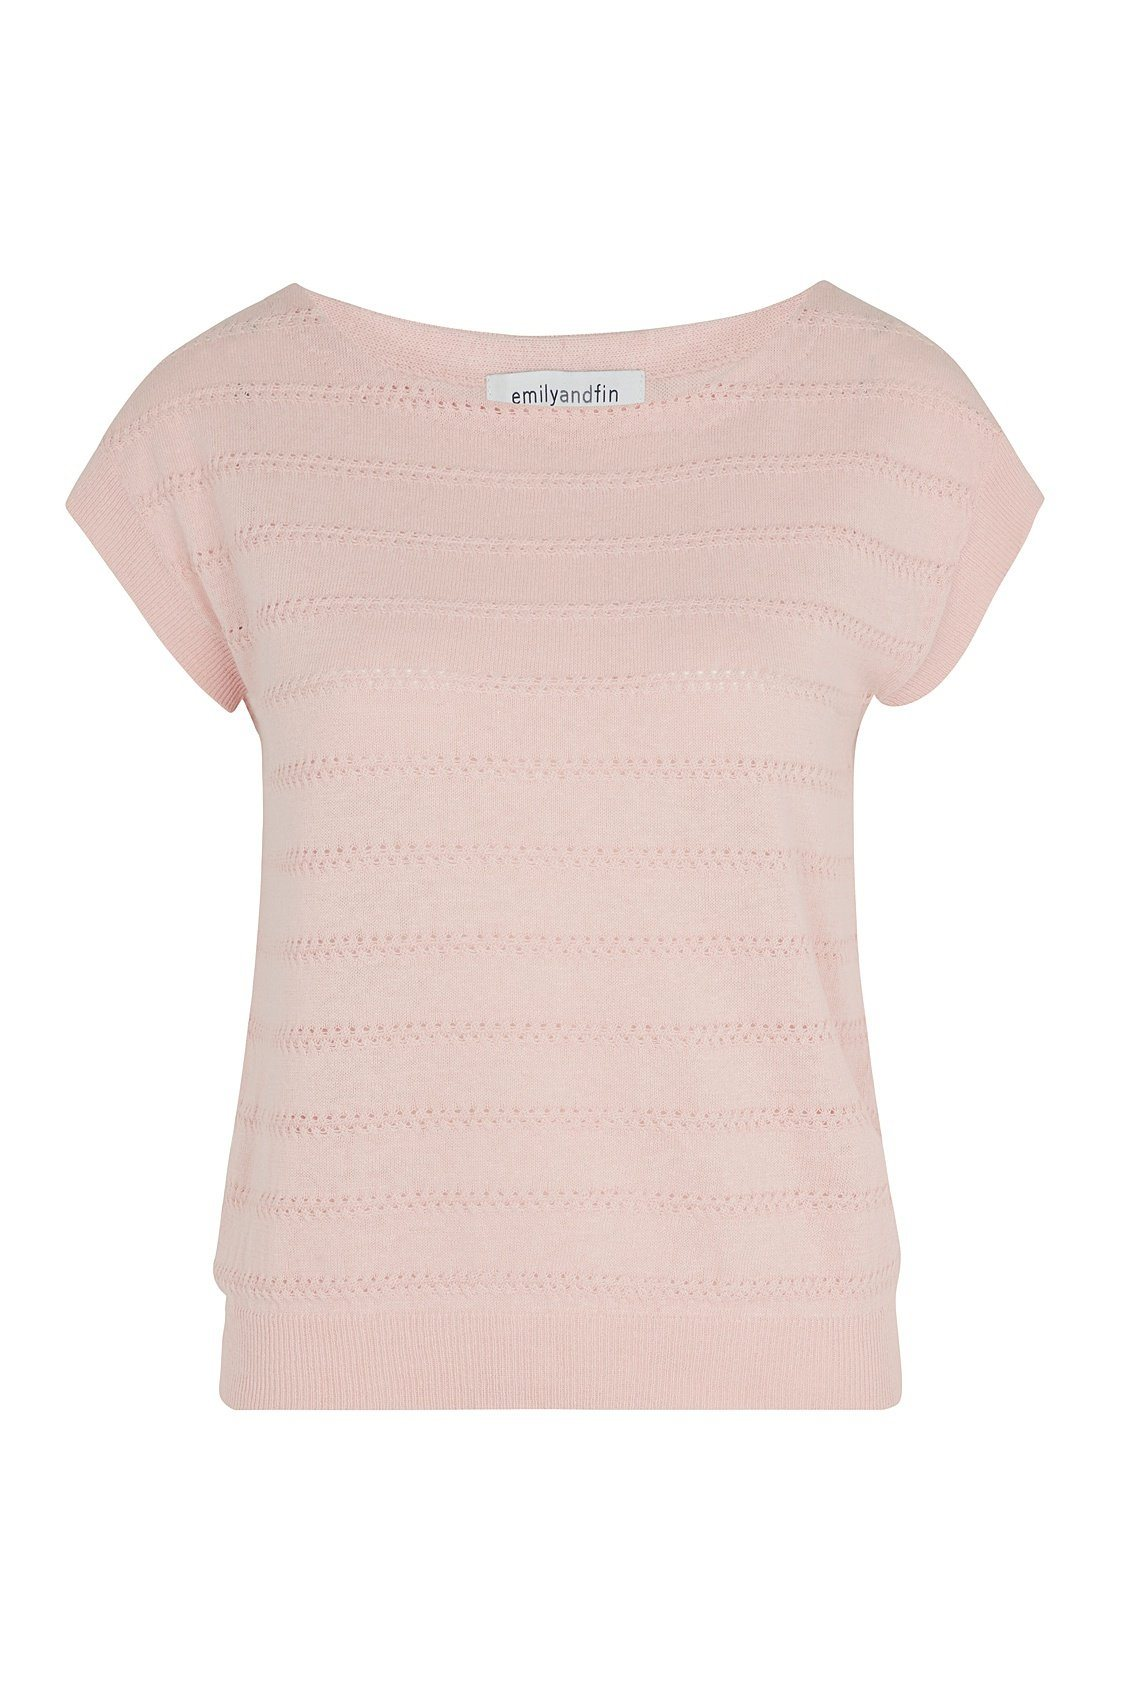 Nicole Button Back Top Blush Top BouChic | Homeware, Fashion, Gifts, Accessories